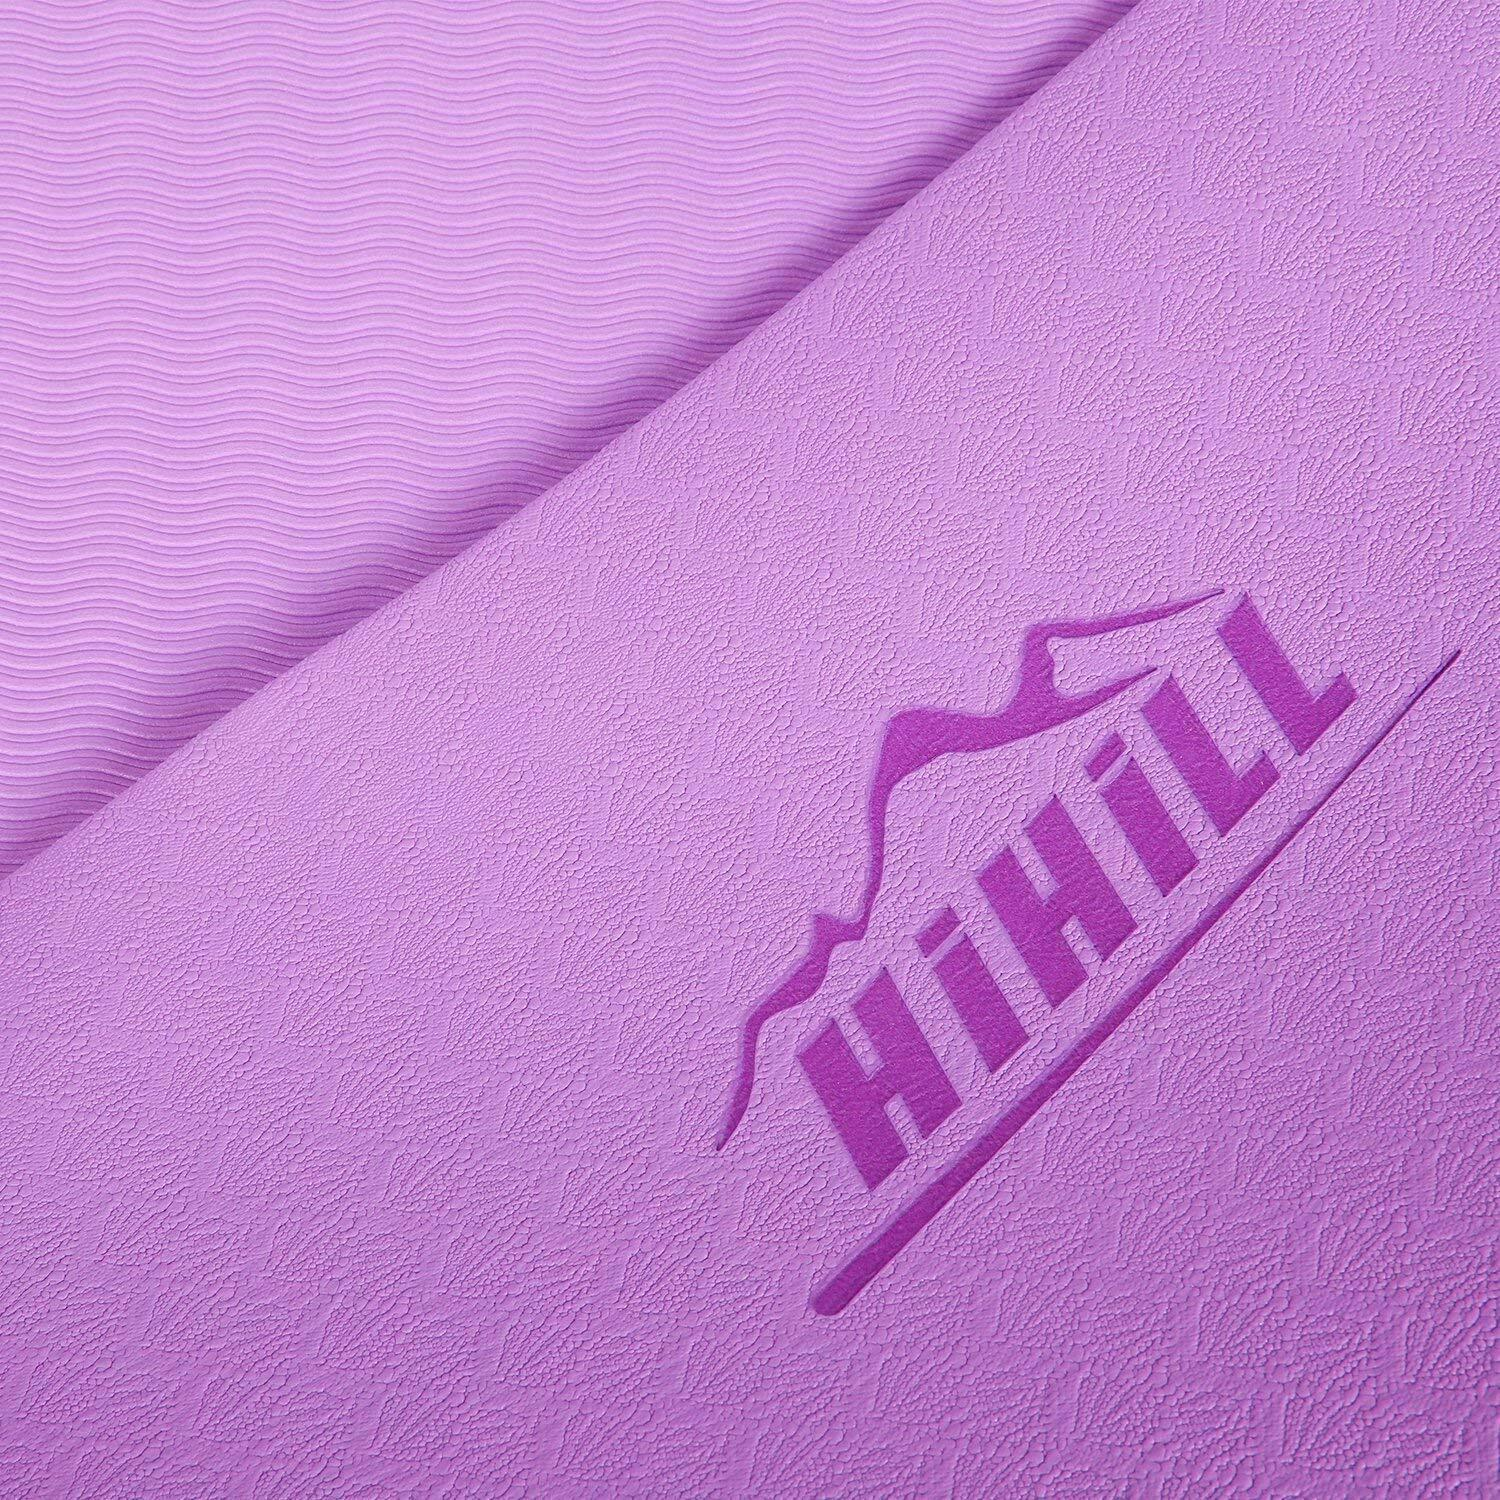 HiHill Yoga Mat, -TPE Non Slip, High Density, with Carry Bag (YG-M1, Purple) 4